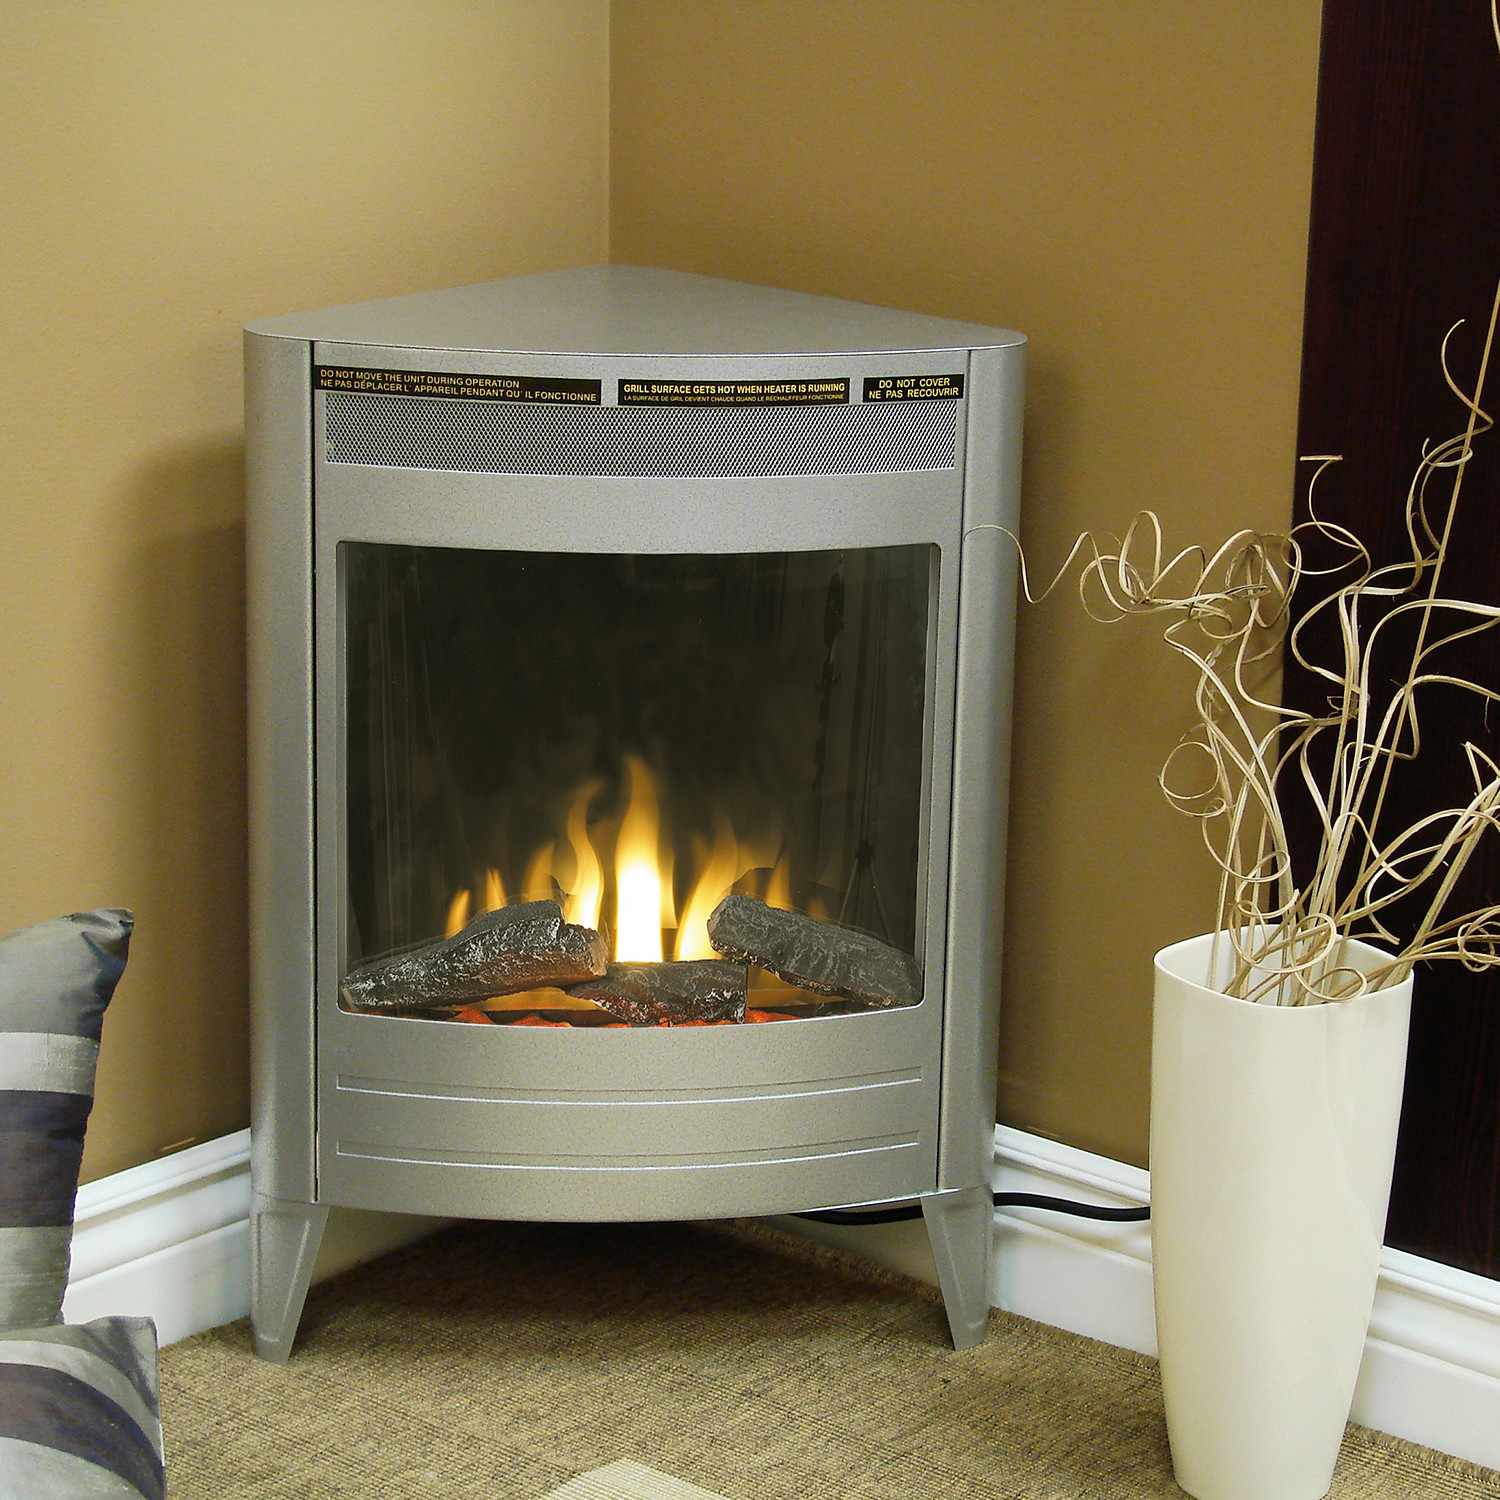 Corner Wood Burning Stove Functional And Interior: Lovely Corner Stove Fireplace @KS58